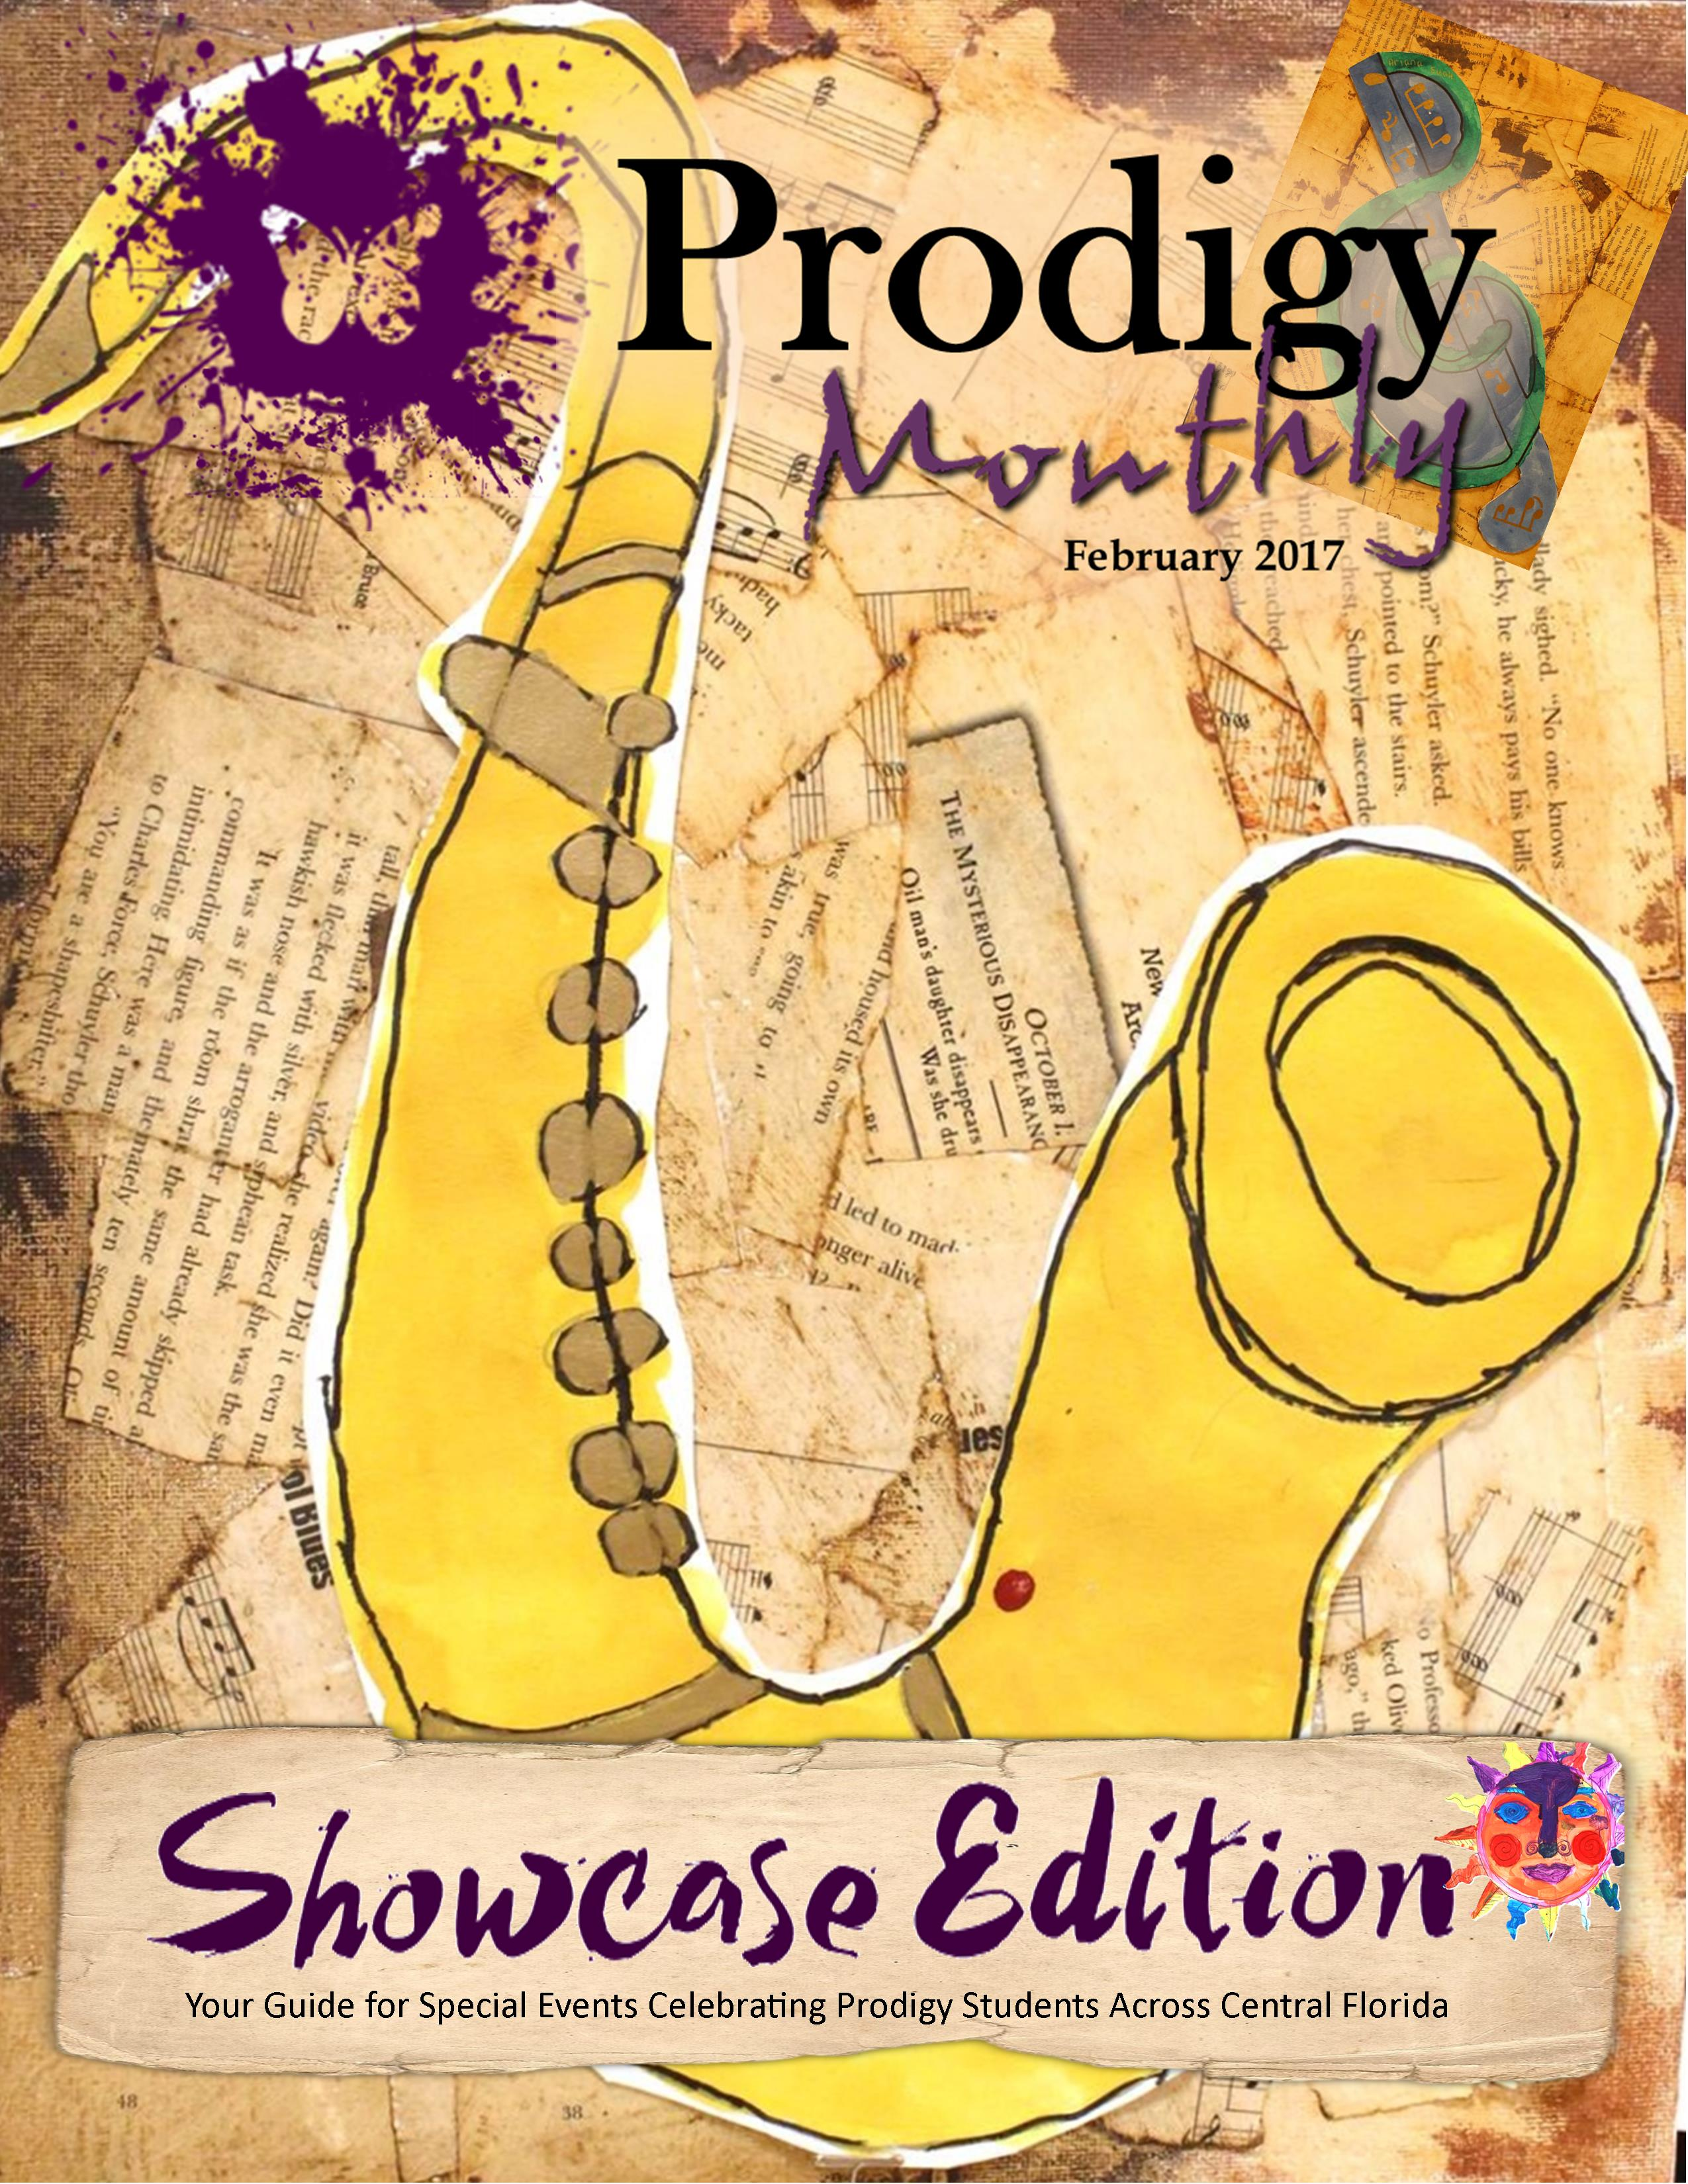 Prodigy Monthly Feb 2017 cover